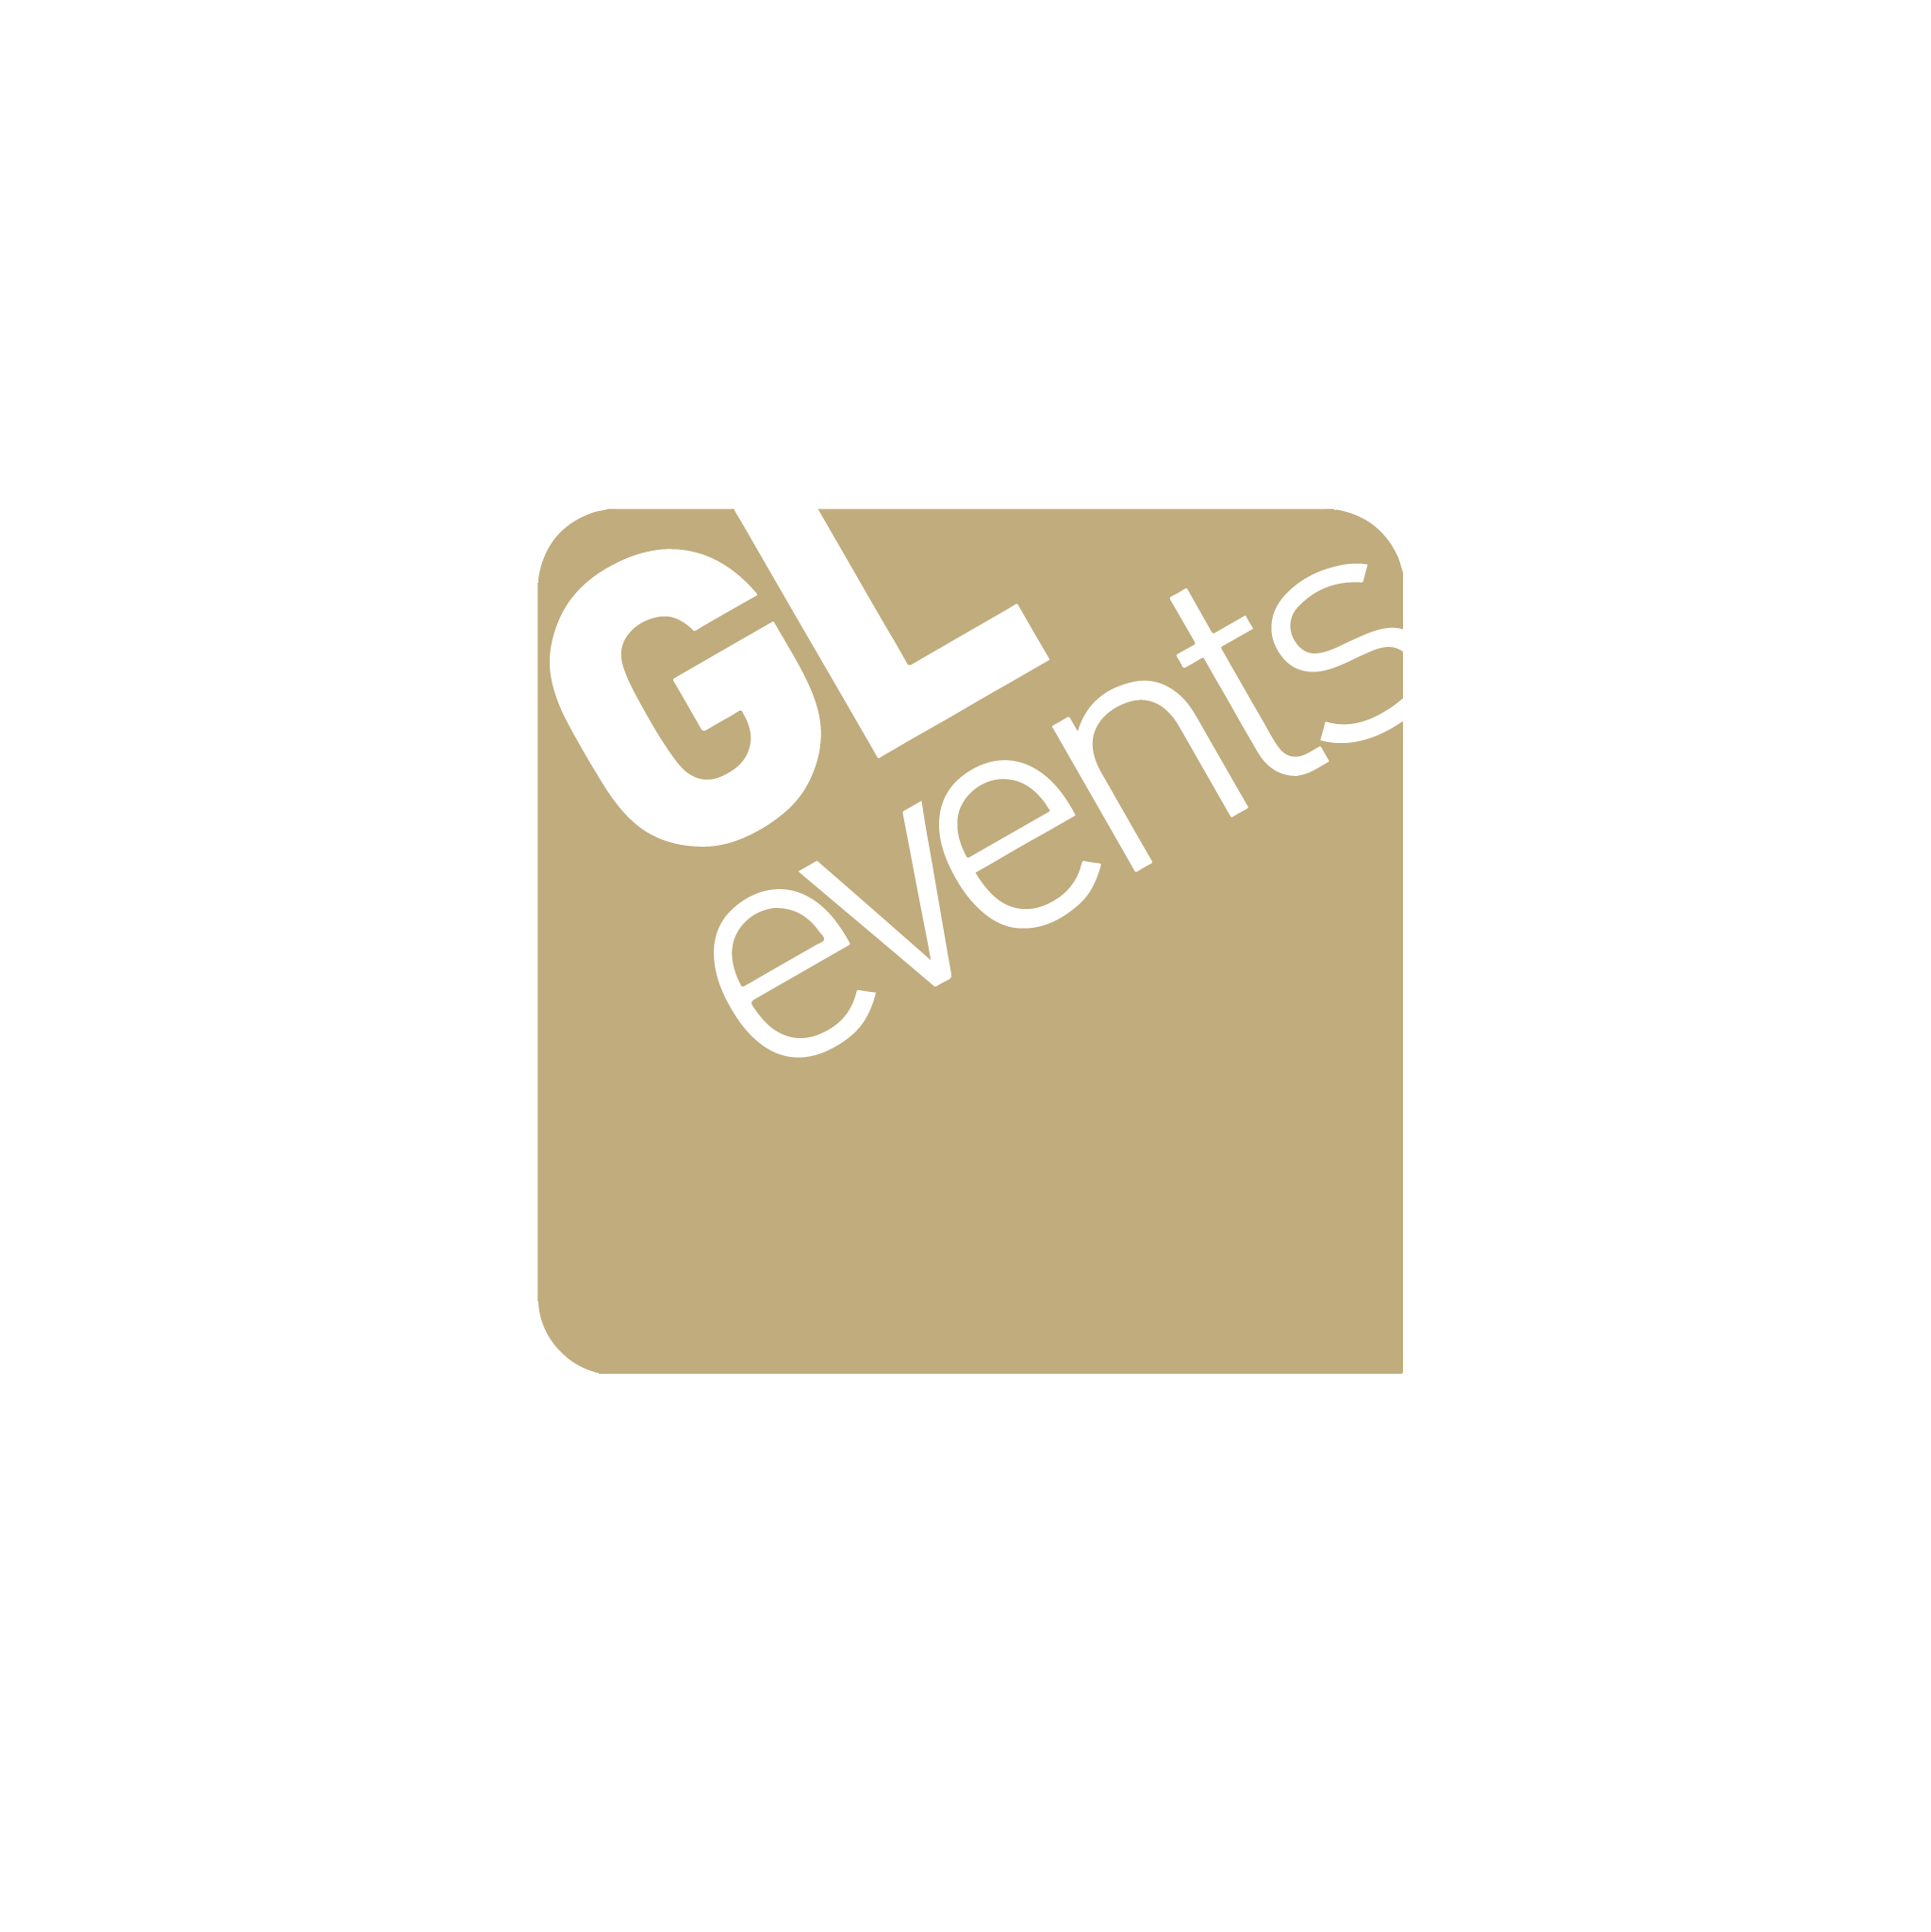 GL events 1